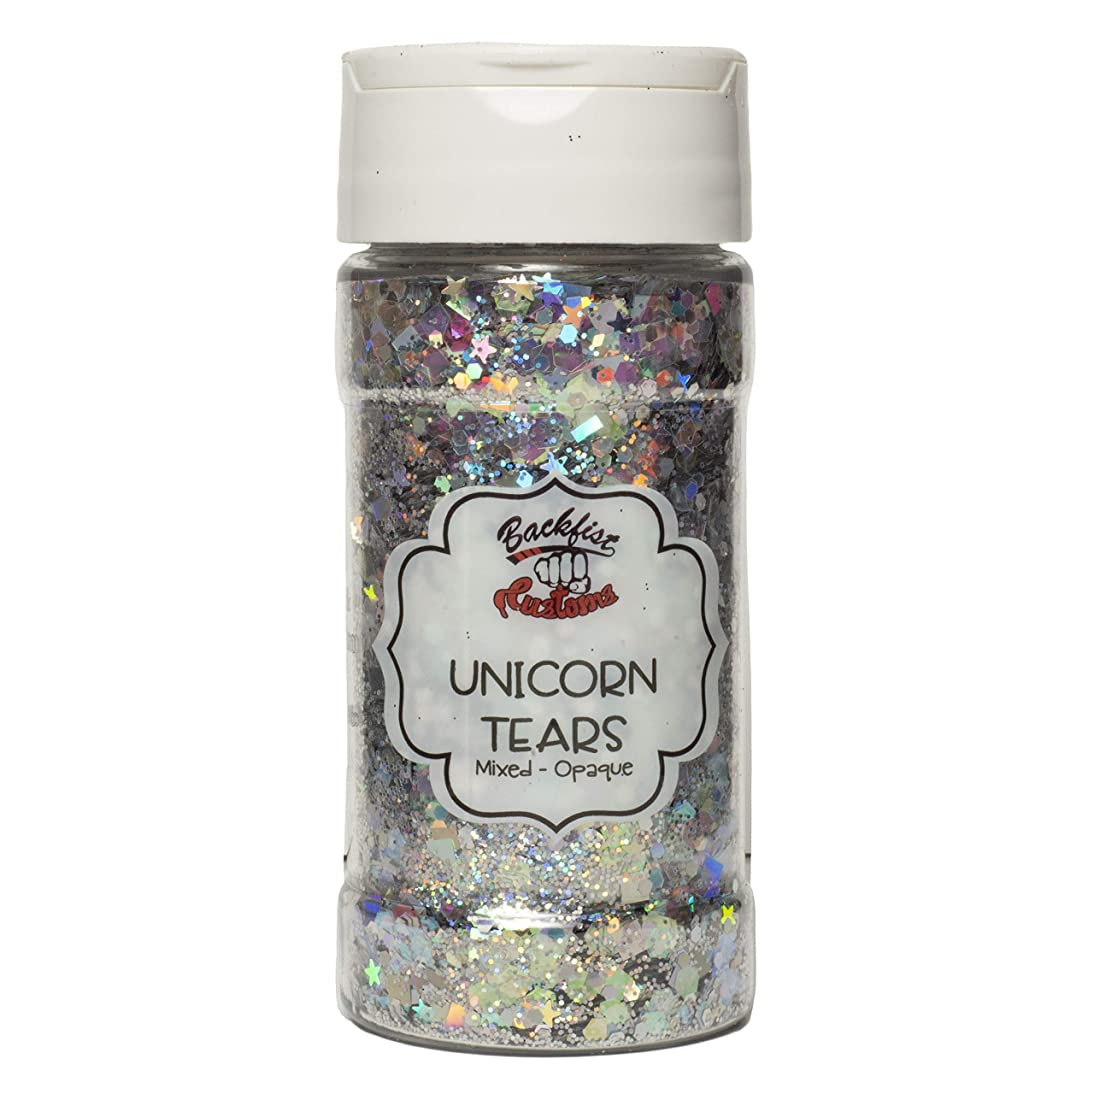 Backfist Customs Glitter Unicorn Tears Premium Polyester Glitter Multi Purpose Dust Powder 4oz for use with tumblers Slime Arts & Crafts Wine Glass Decoration Weddings Cards